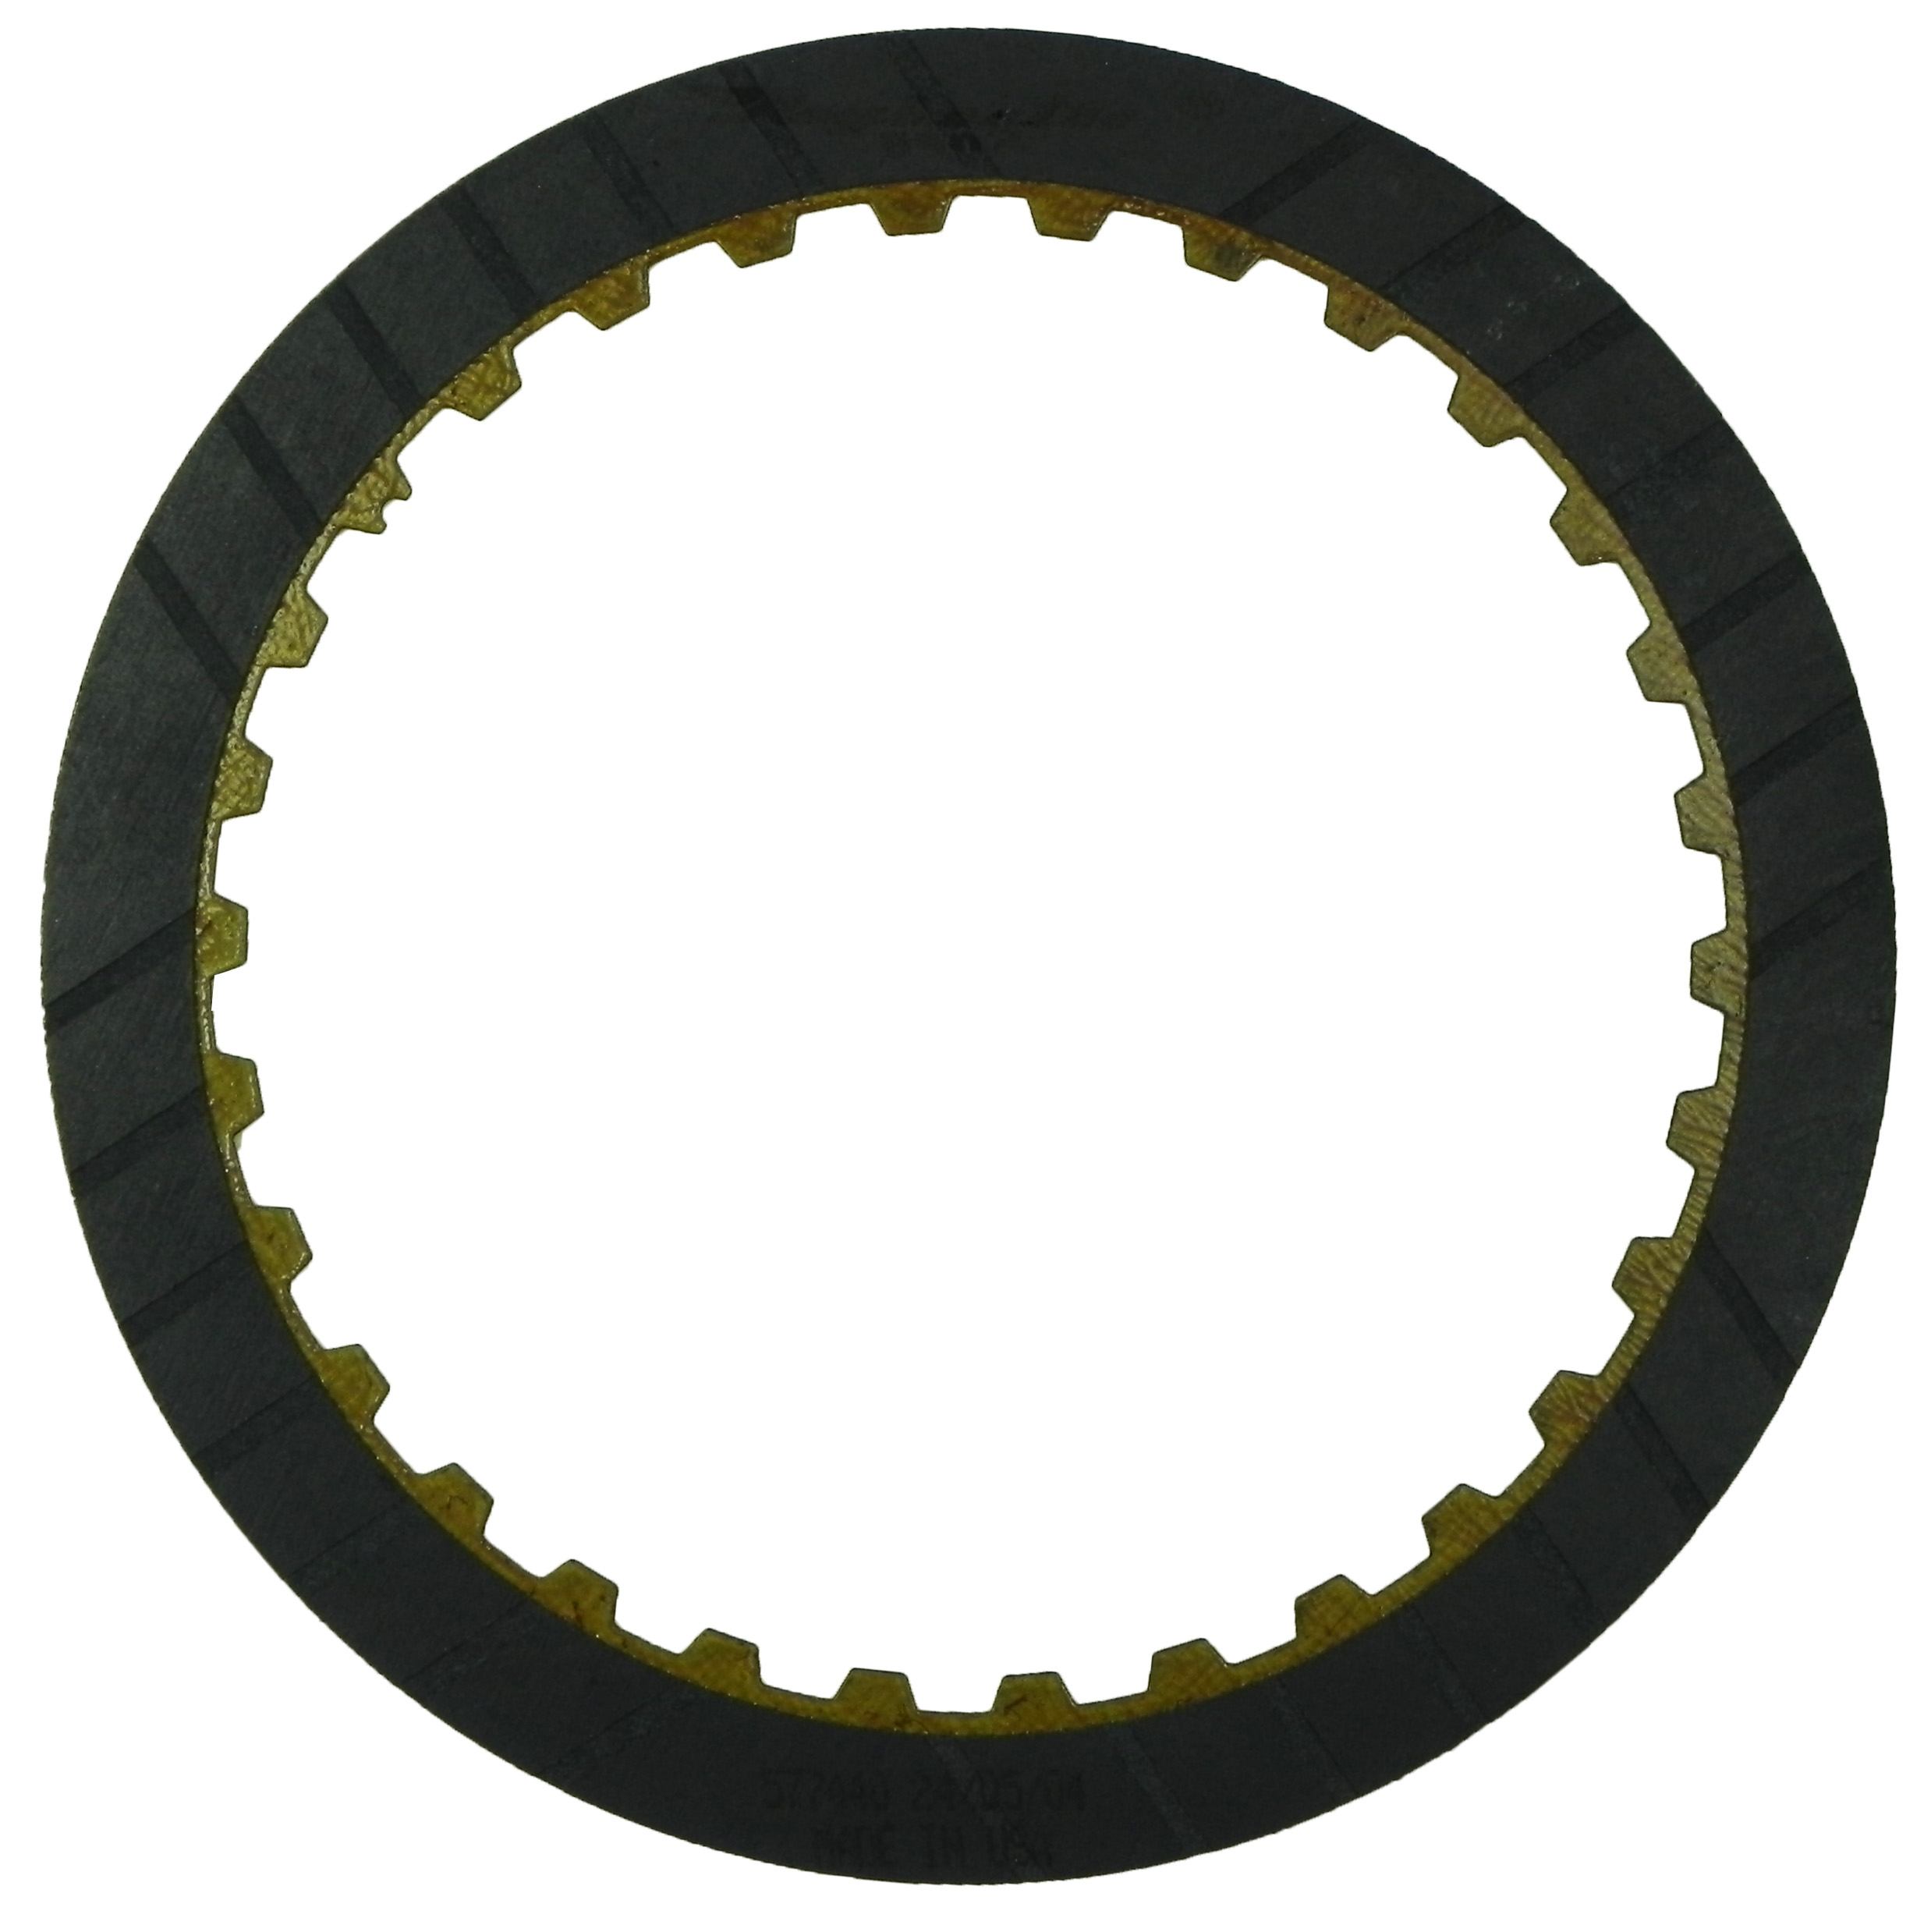 "R577440 | 1976-1990 Friction Clutch Plate GEN 2, Blue Plate Special Forward, Direct GEN 2, Race Product (.080"")"